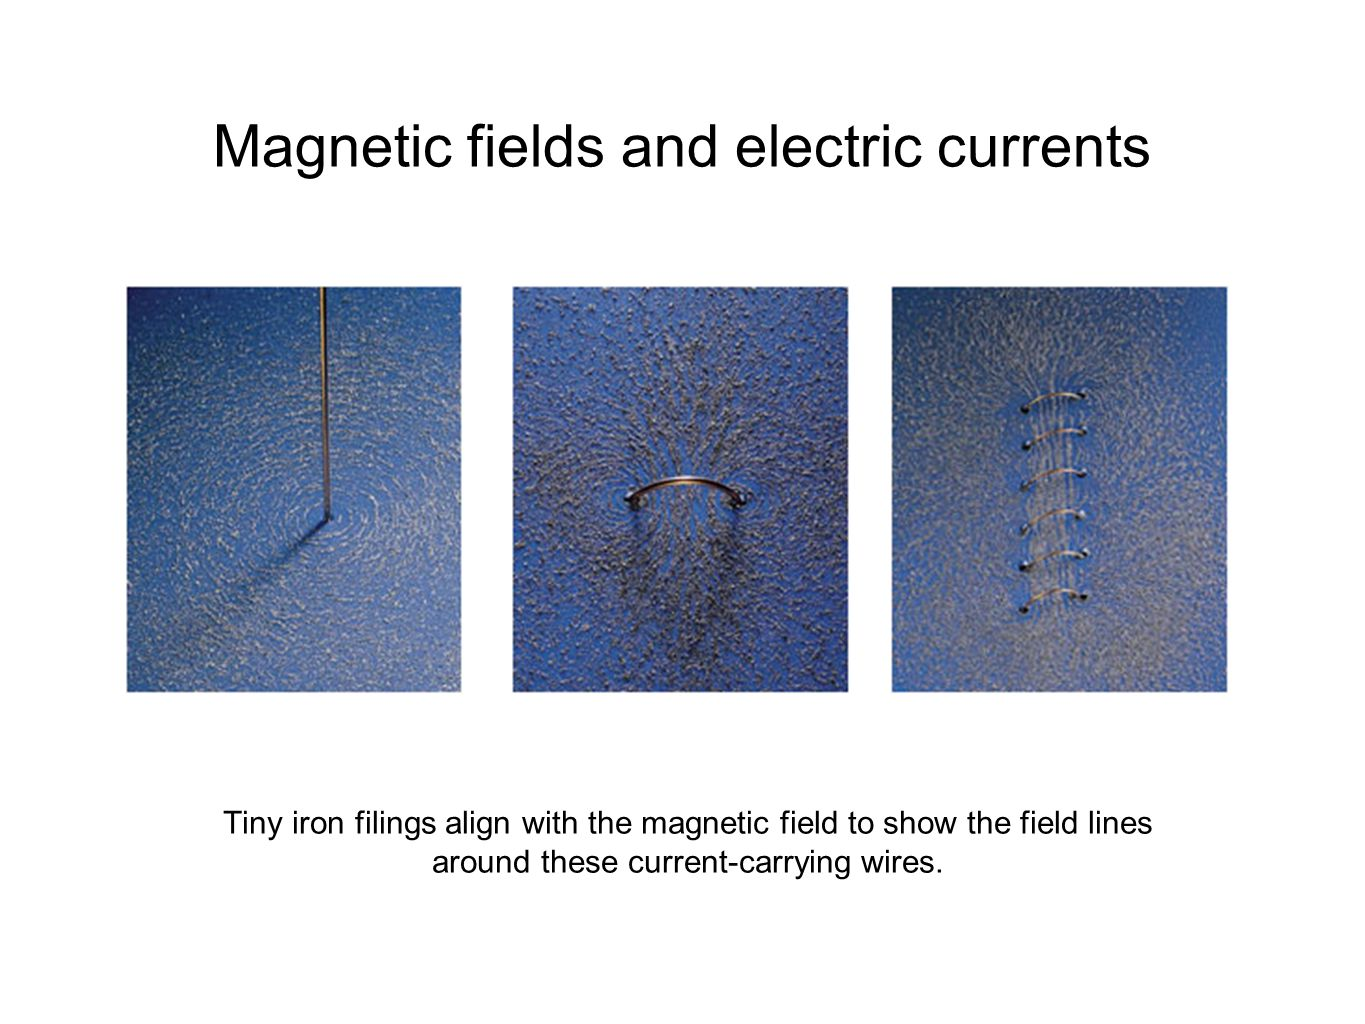 Magnetic fields and electric currents Tiny iron filings align with the magnetic field to show the field lines around these current-carrying wires.